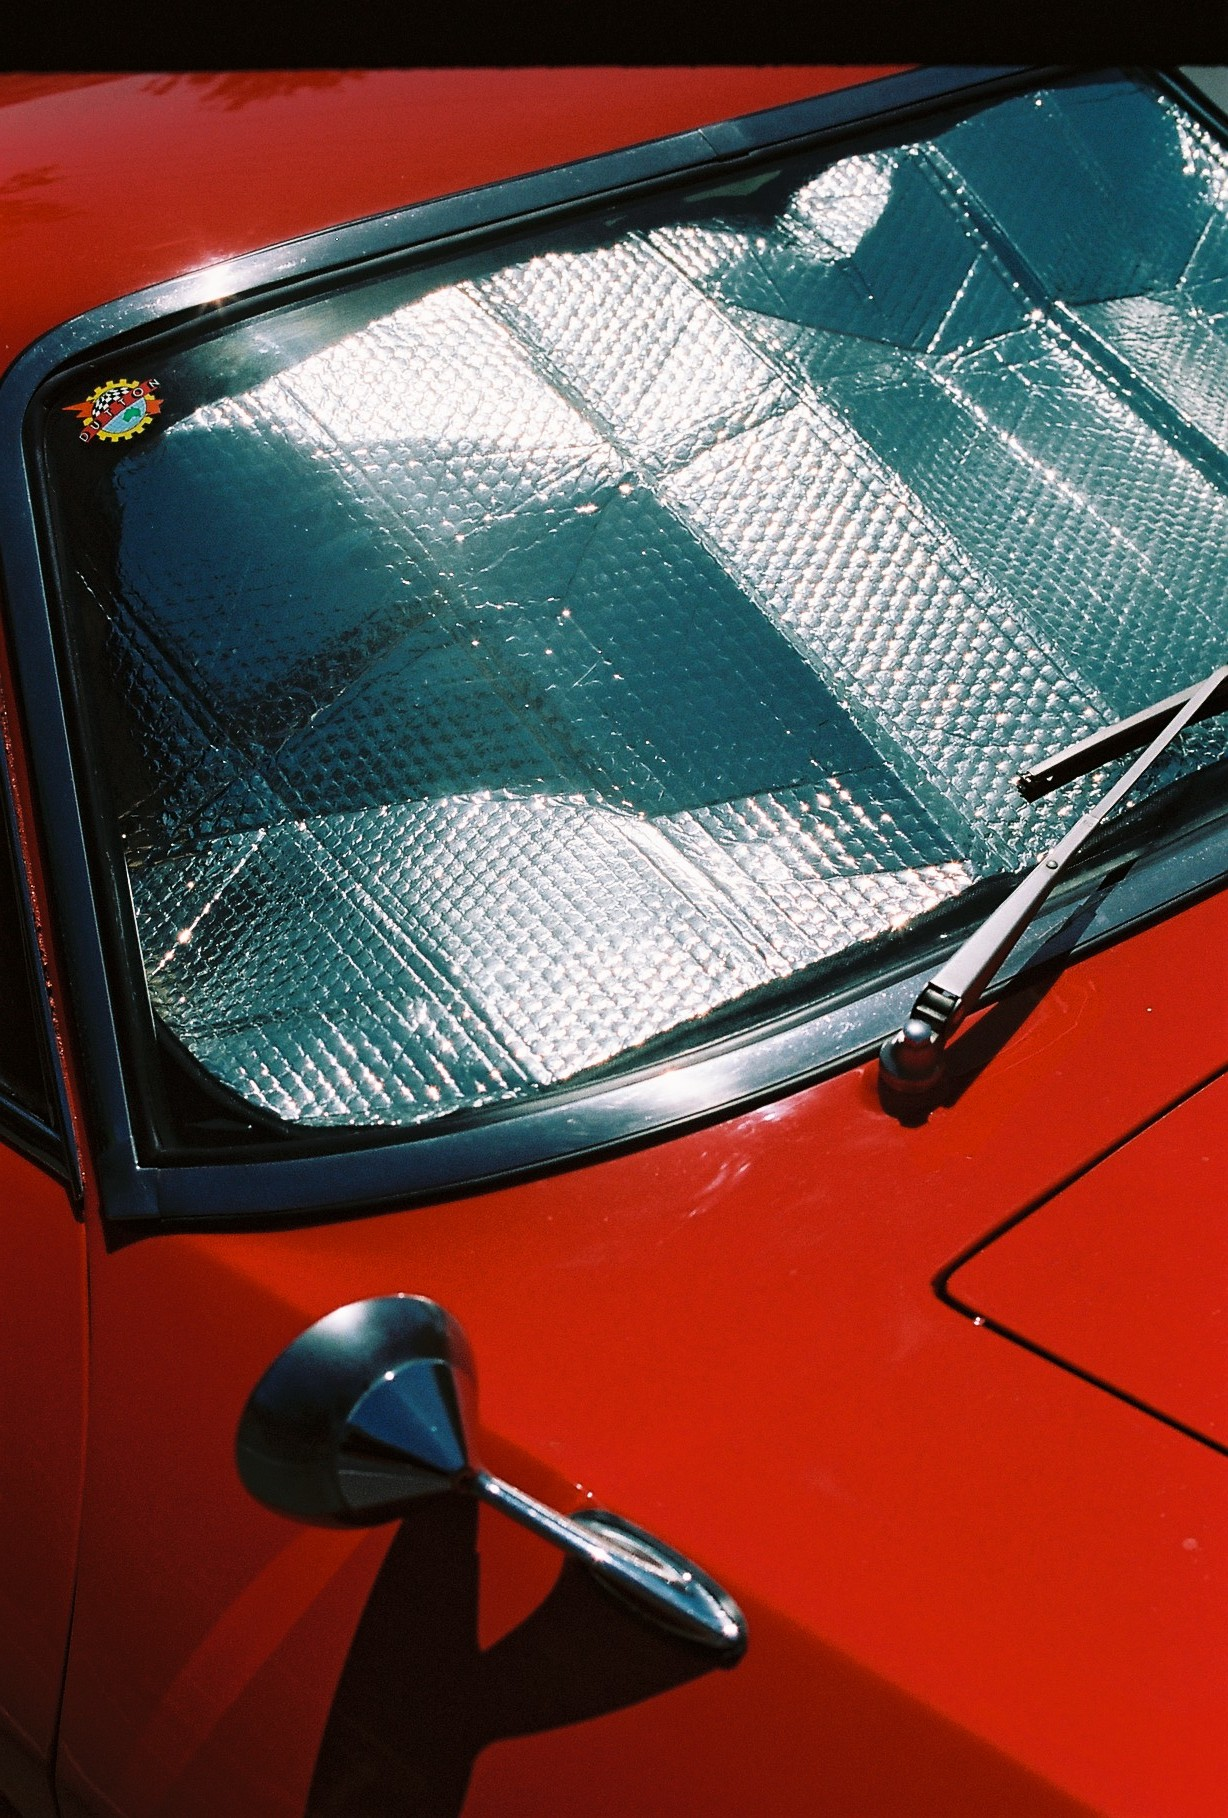 photography suburb melbourne red car reflection